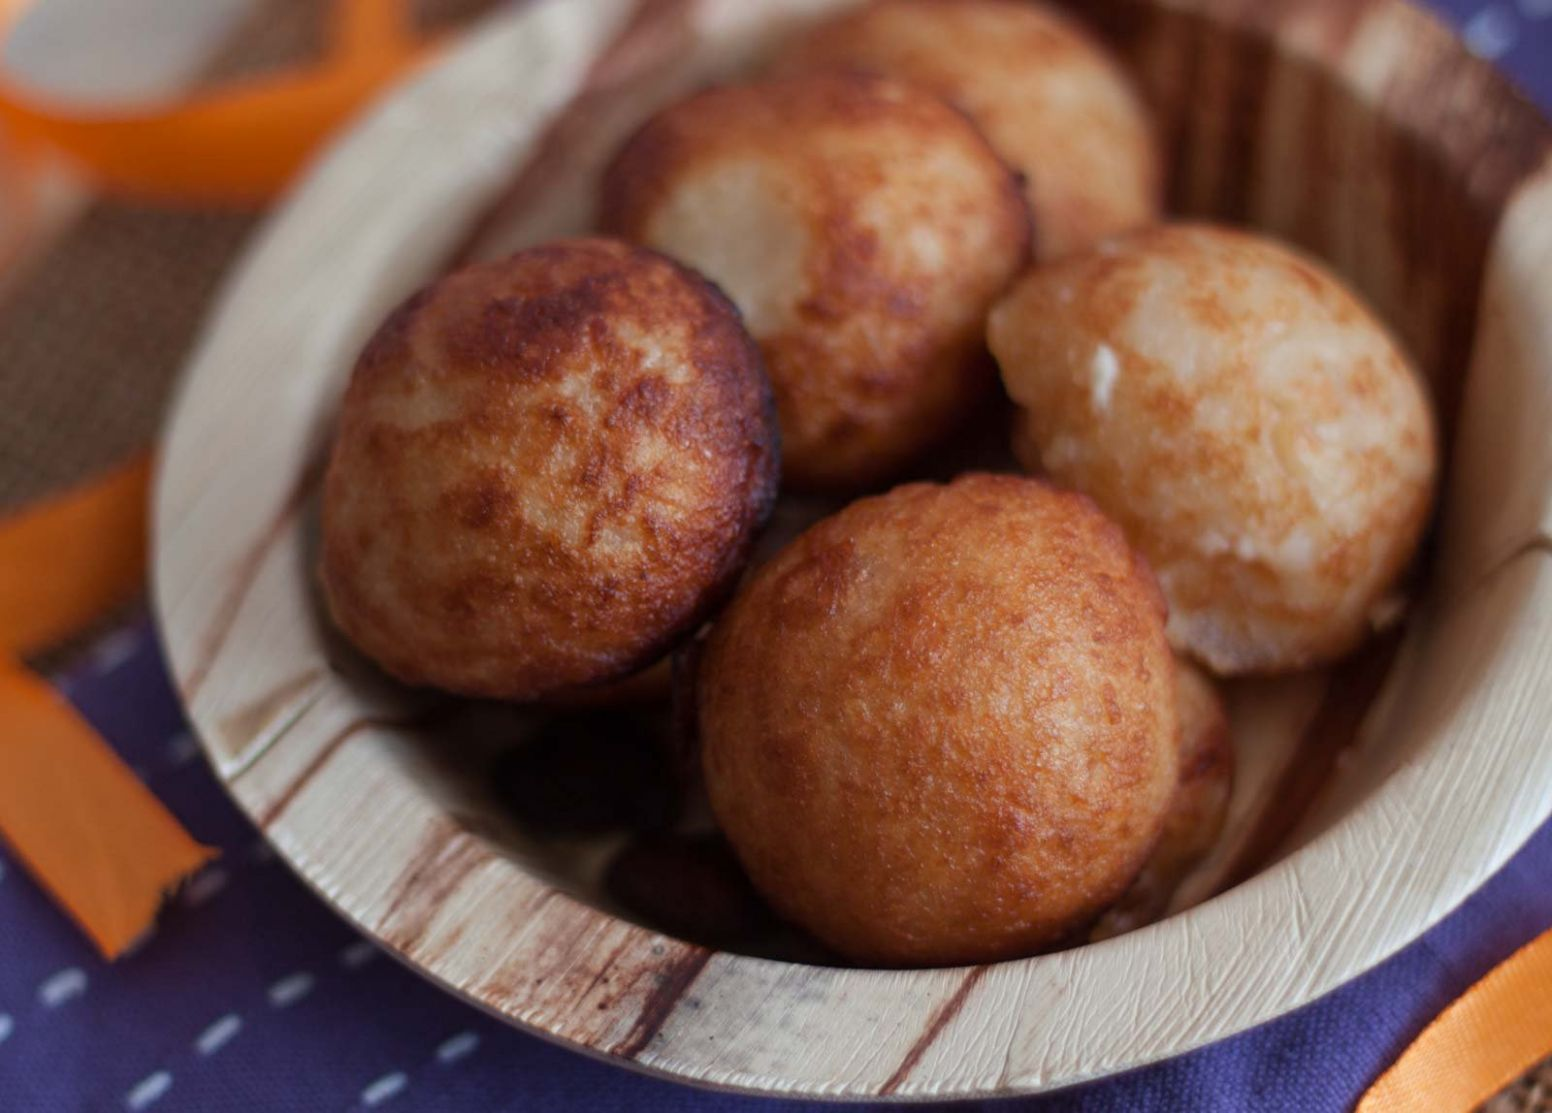 Andhra Style Paakundalu/ Pakam Undalu Recipe (Rice flour Coconut Fritters) - Recipes Using Rice Flour For Baking